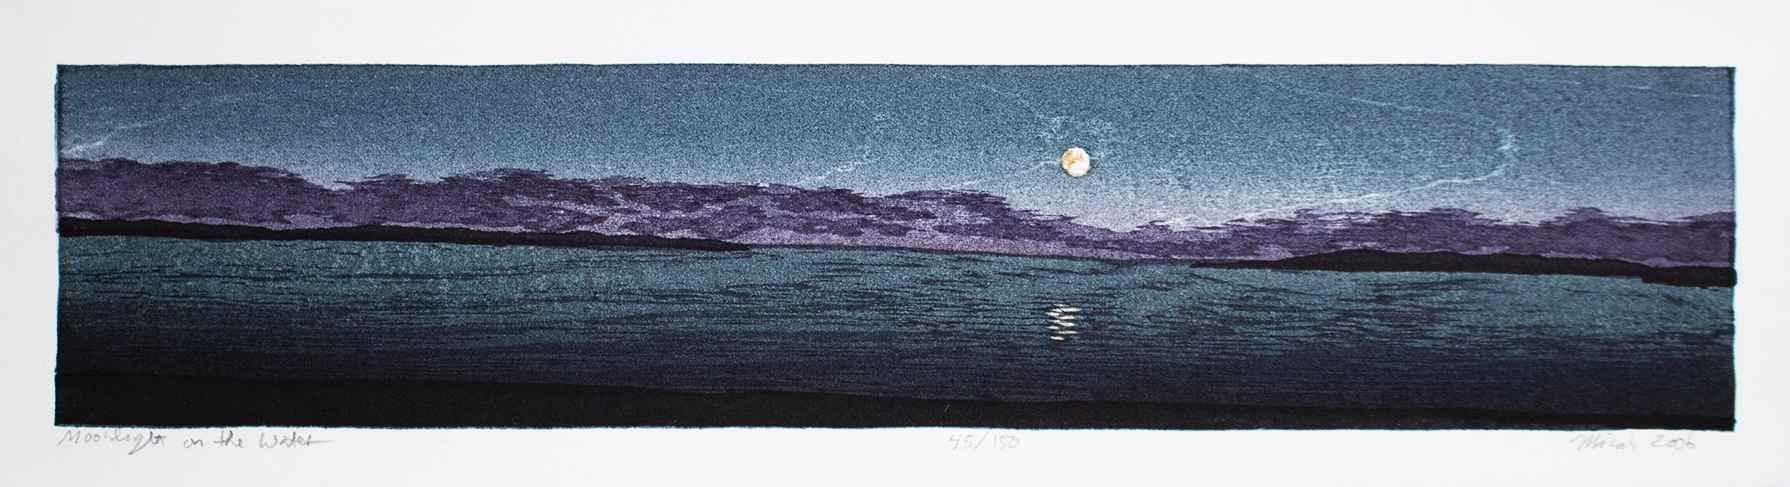 Moonlight on the Water by  Micah Schwaberow - Masterpiece Online